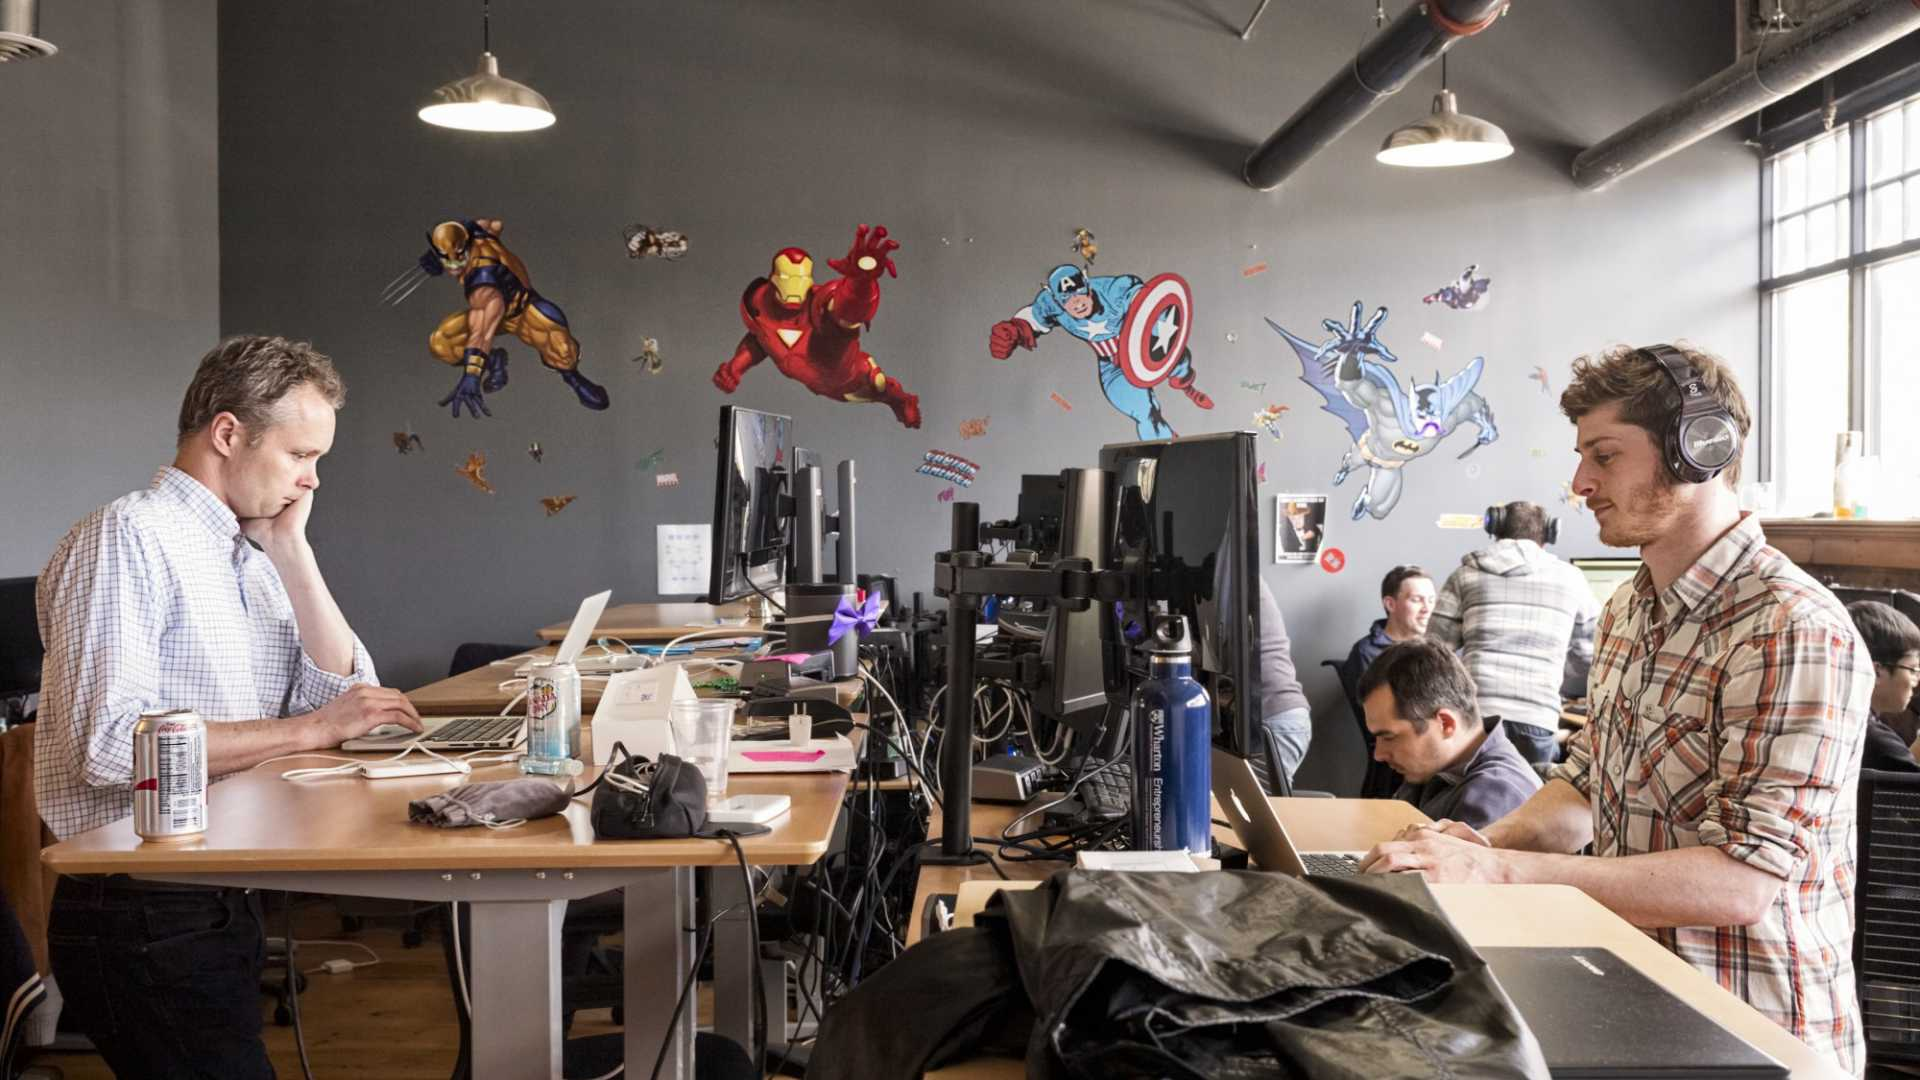 Employees working at standing desks in e-commerce company Jet.com's Montclair, New Jersey, office.